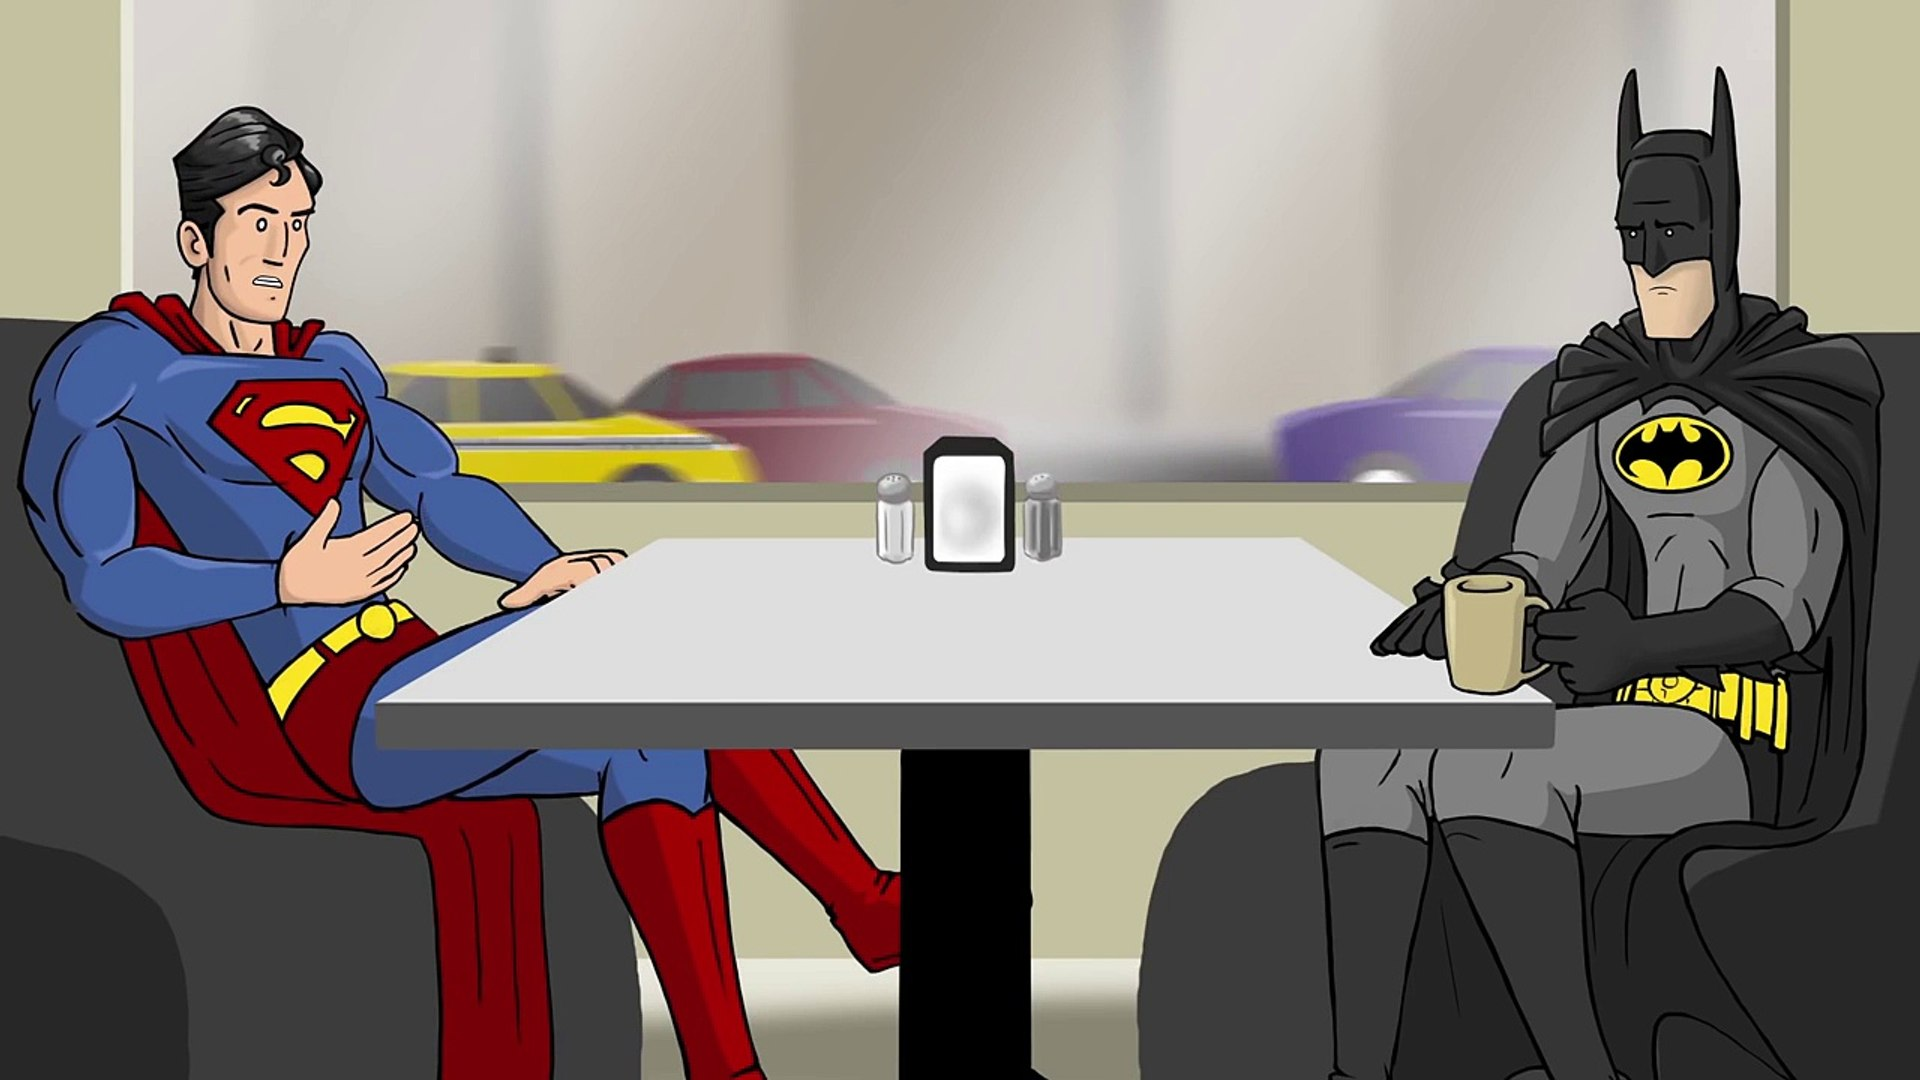 Super Cafe Batman v Superman   Its On   Dailymotion Video 1920x1080